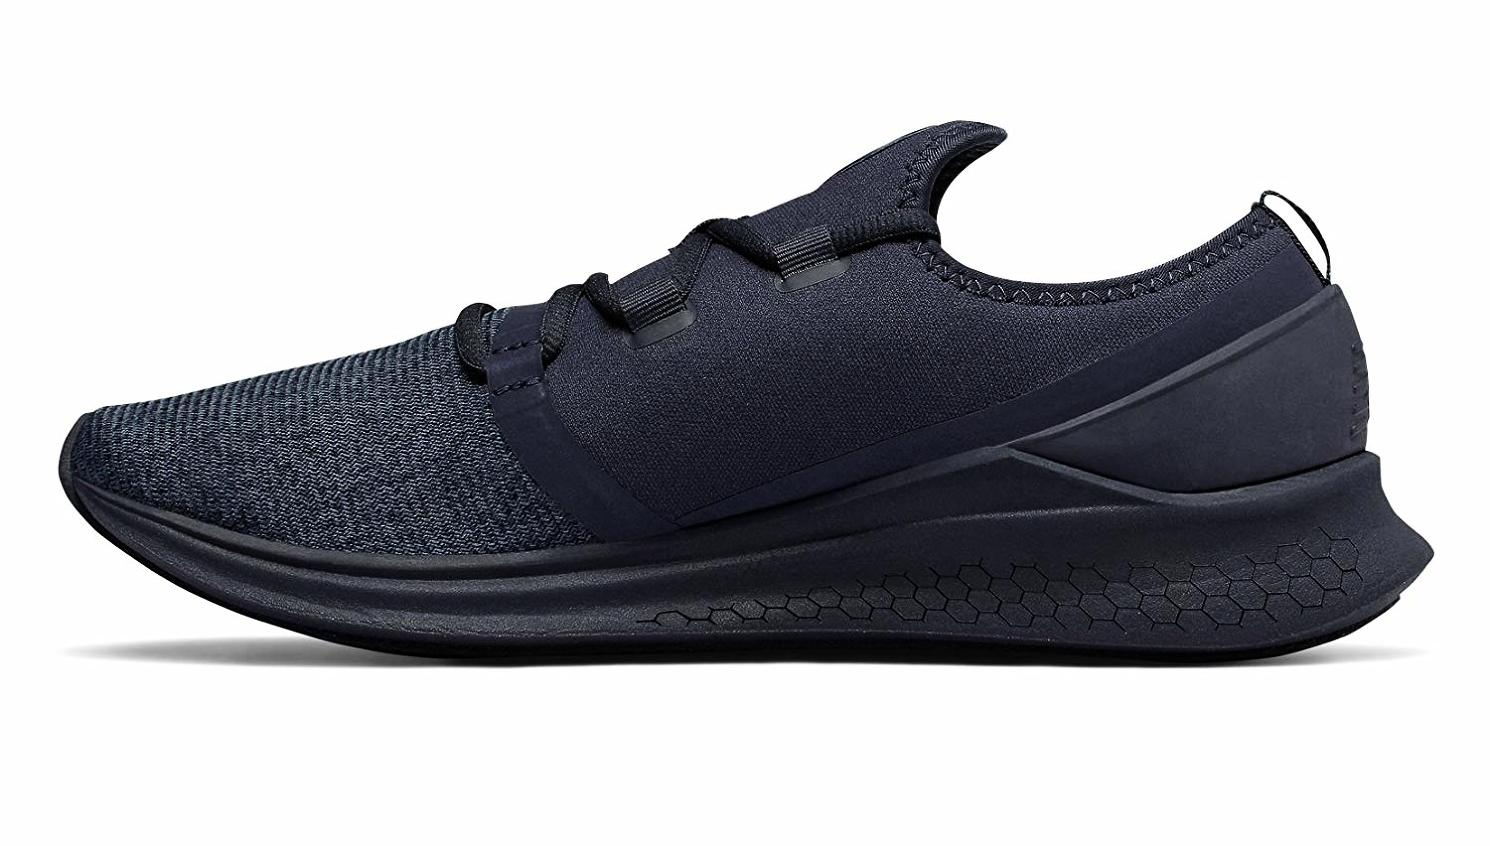 NEW BALANCE MLAZREN Lazr Fresh Foam Navy Blue Men's Running Shoes